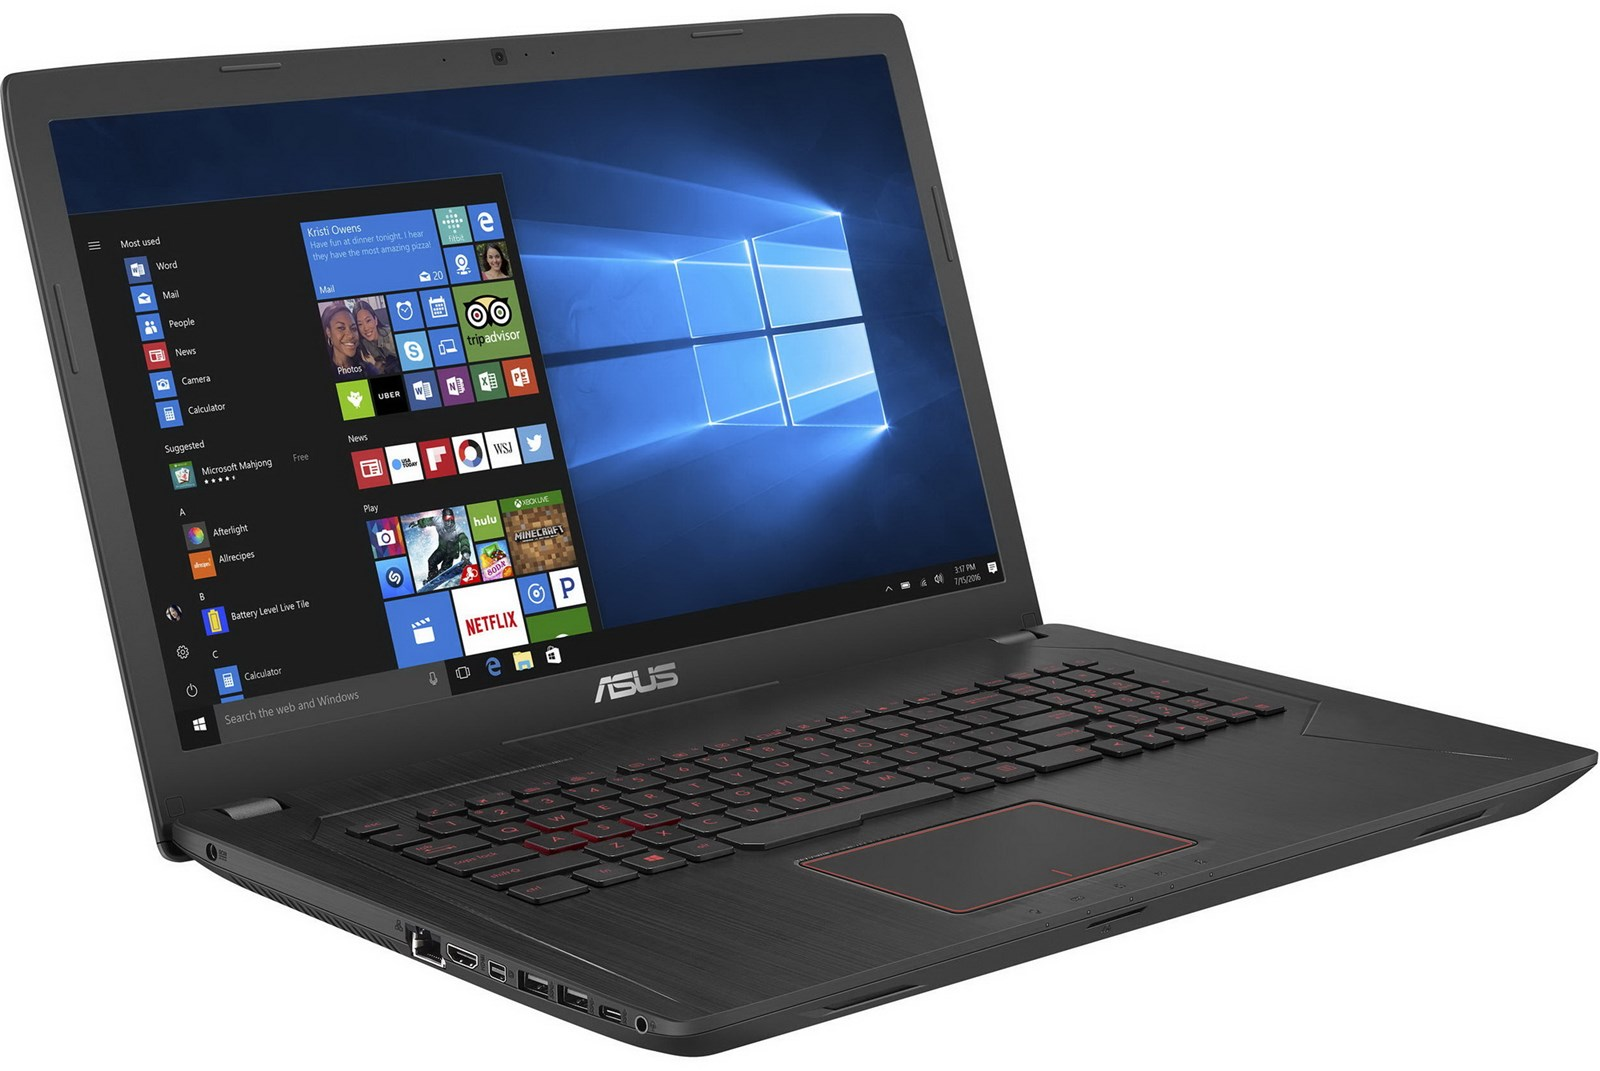 "Asus FX73VE-WH71 17.3"" Full HD GTX 1050Ti 4GB GDDR5 Gaming Laptop by ASUS"